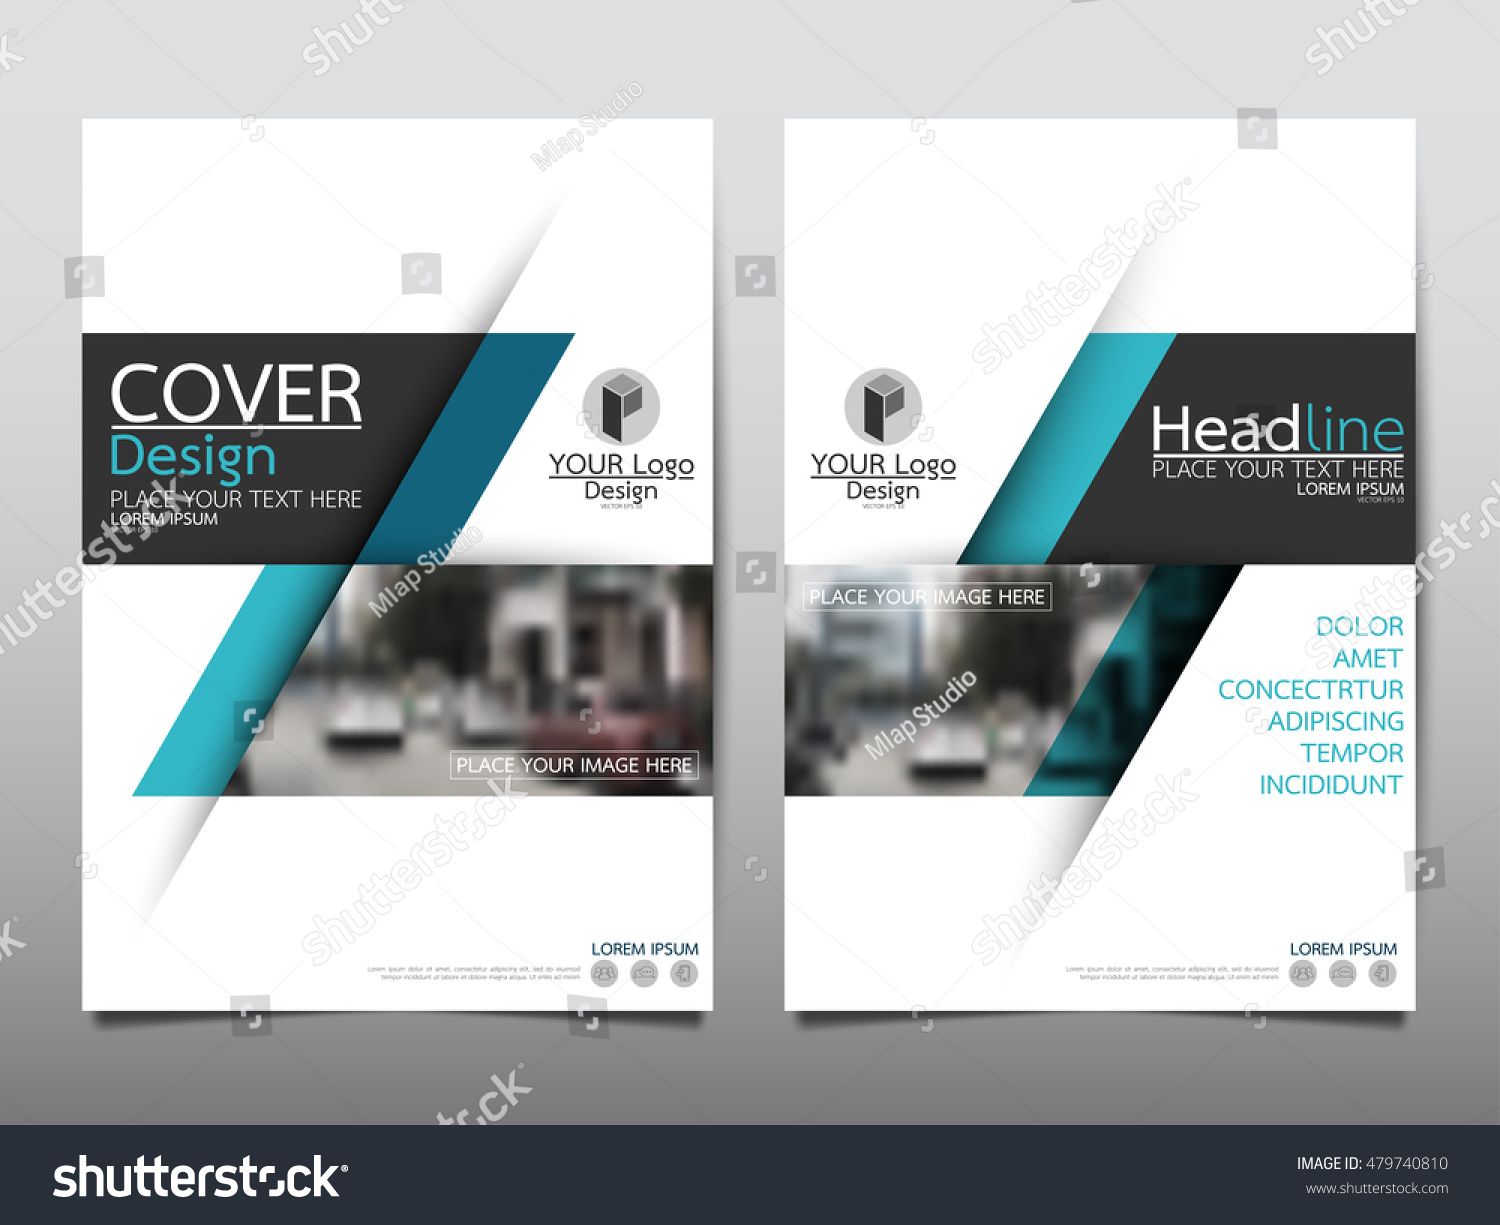 Free Flyer Design Templates Free